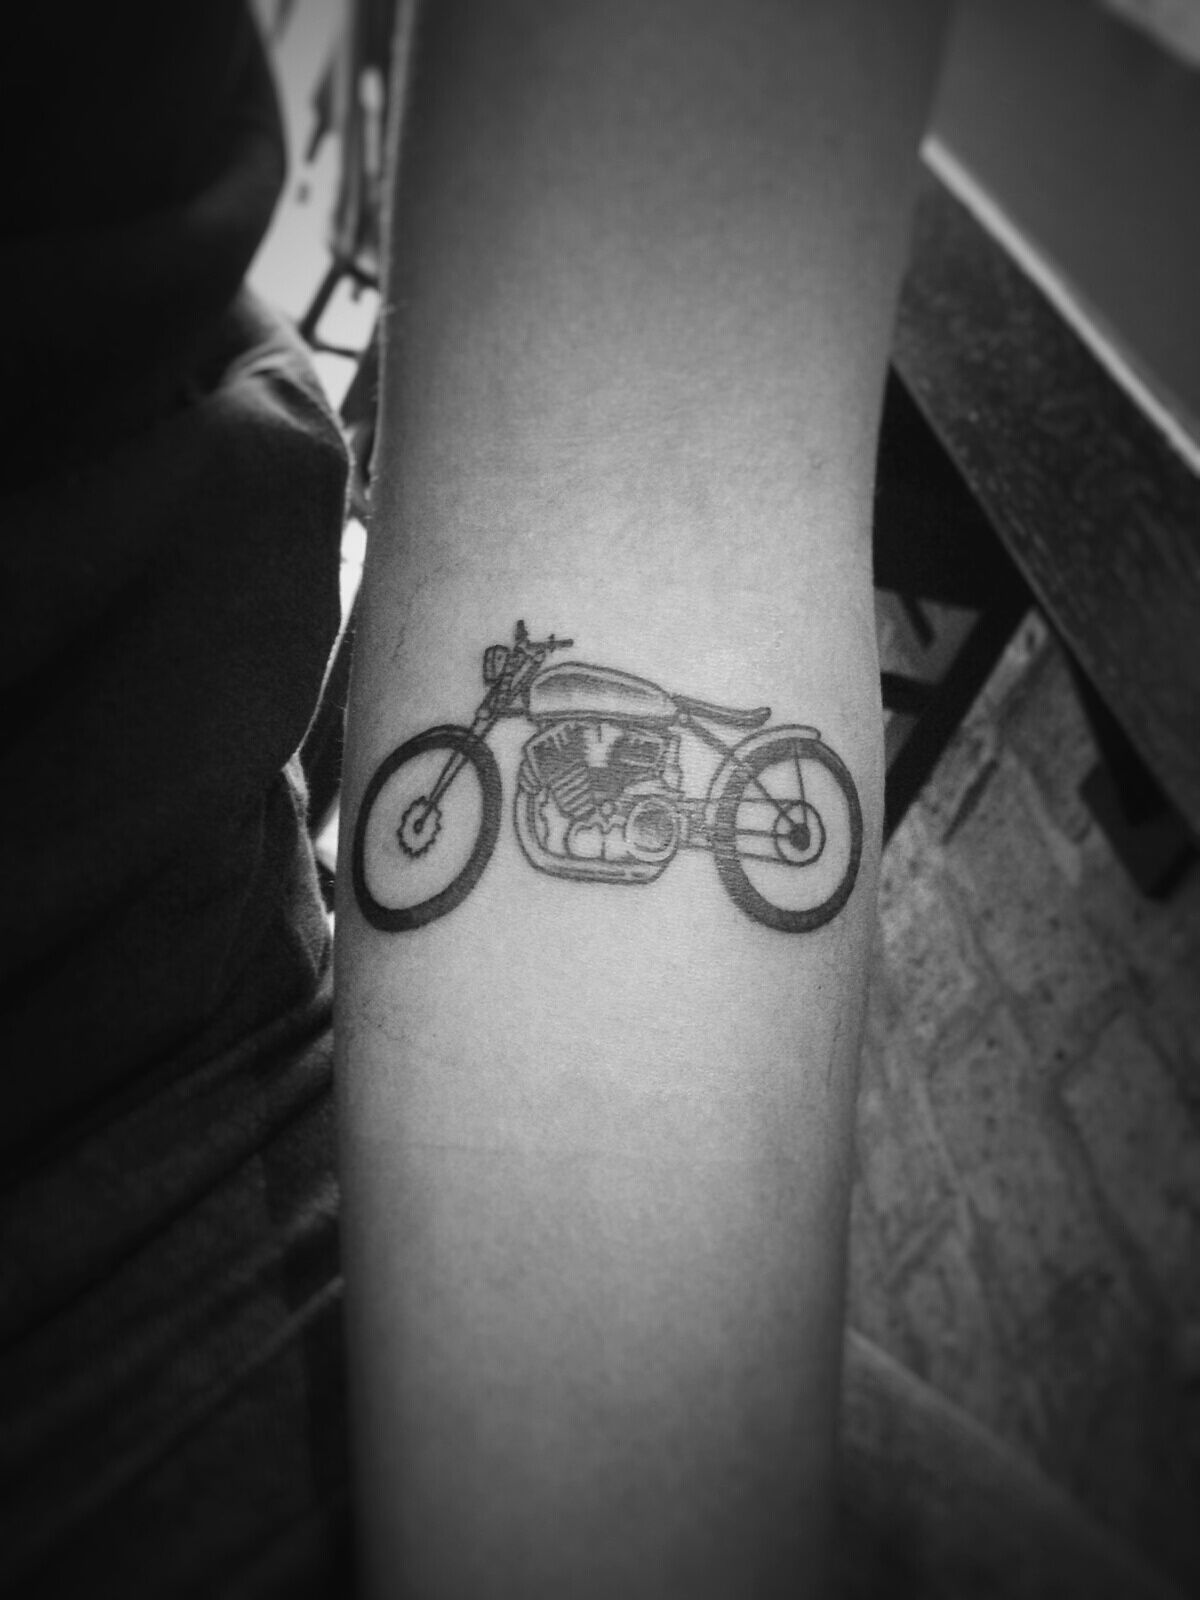 Small Simple Motorcycle Tattoo On Forearm Motorcycle Tattoos Tattoos Tattoos For Guys